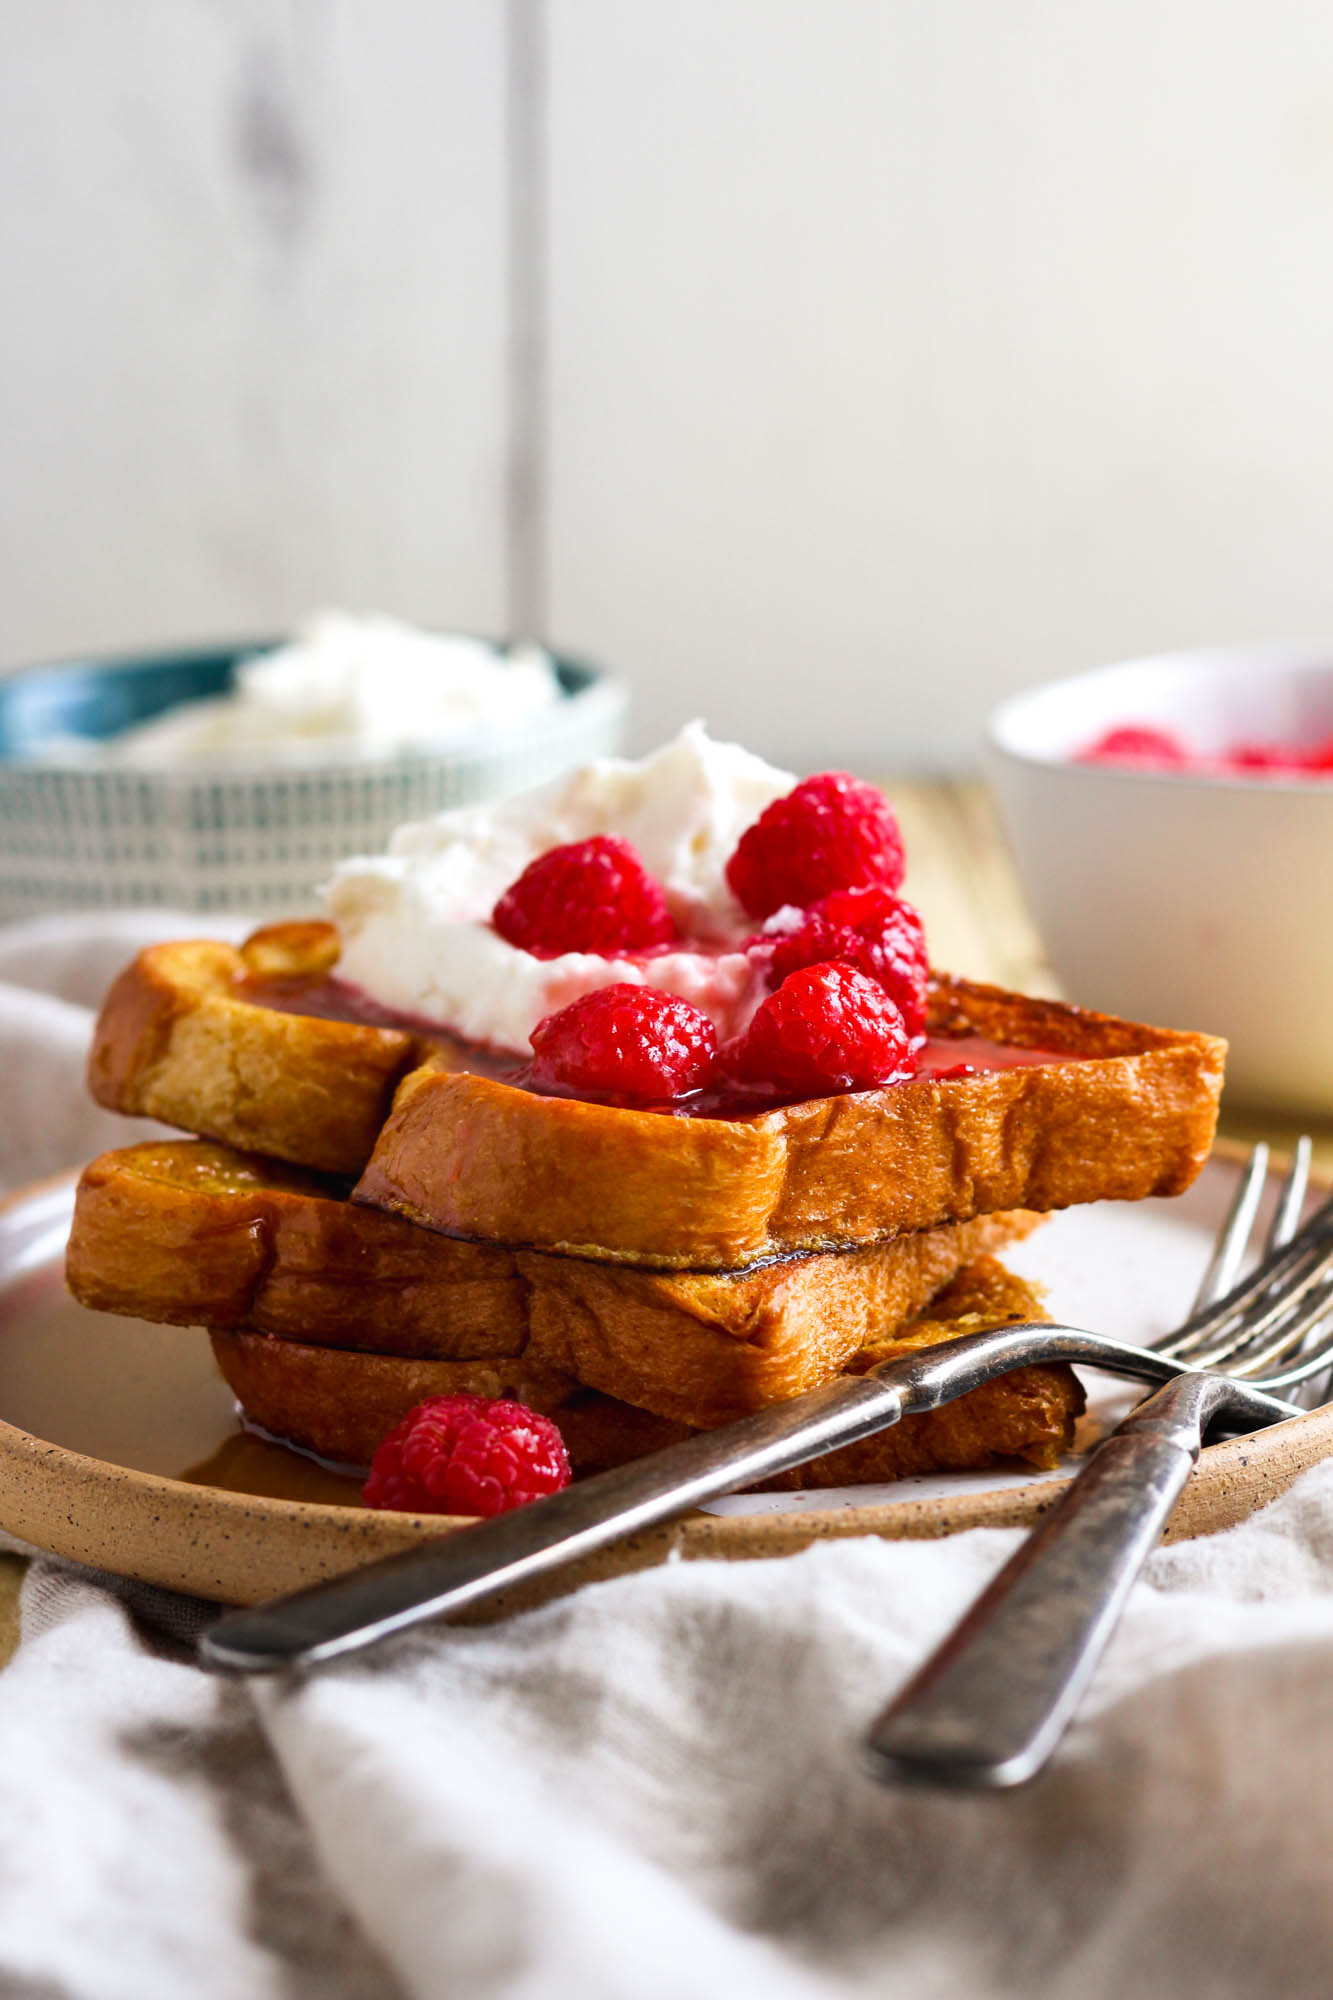 Cinnamon French toast topped with raspberries and lemon whipped cream